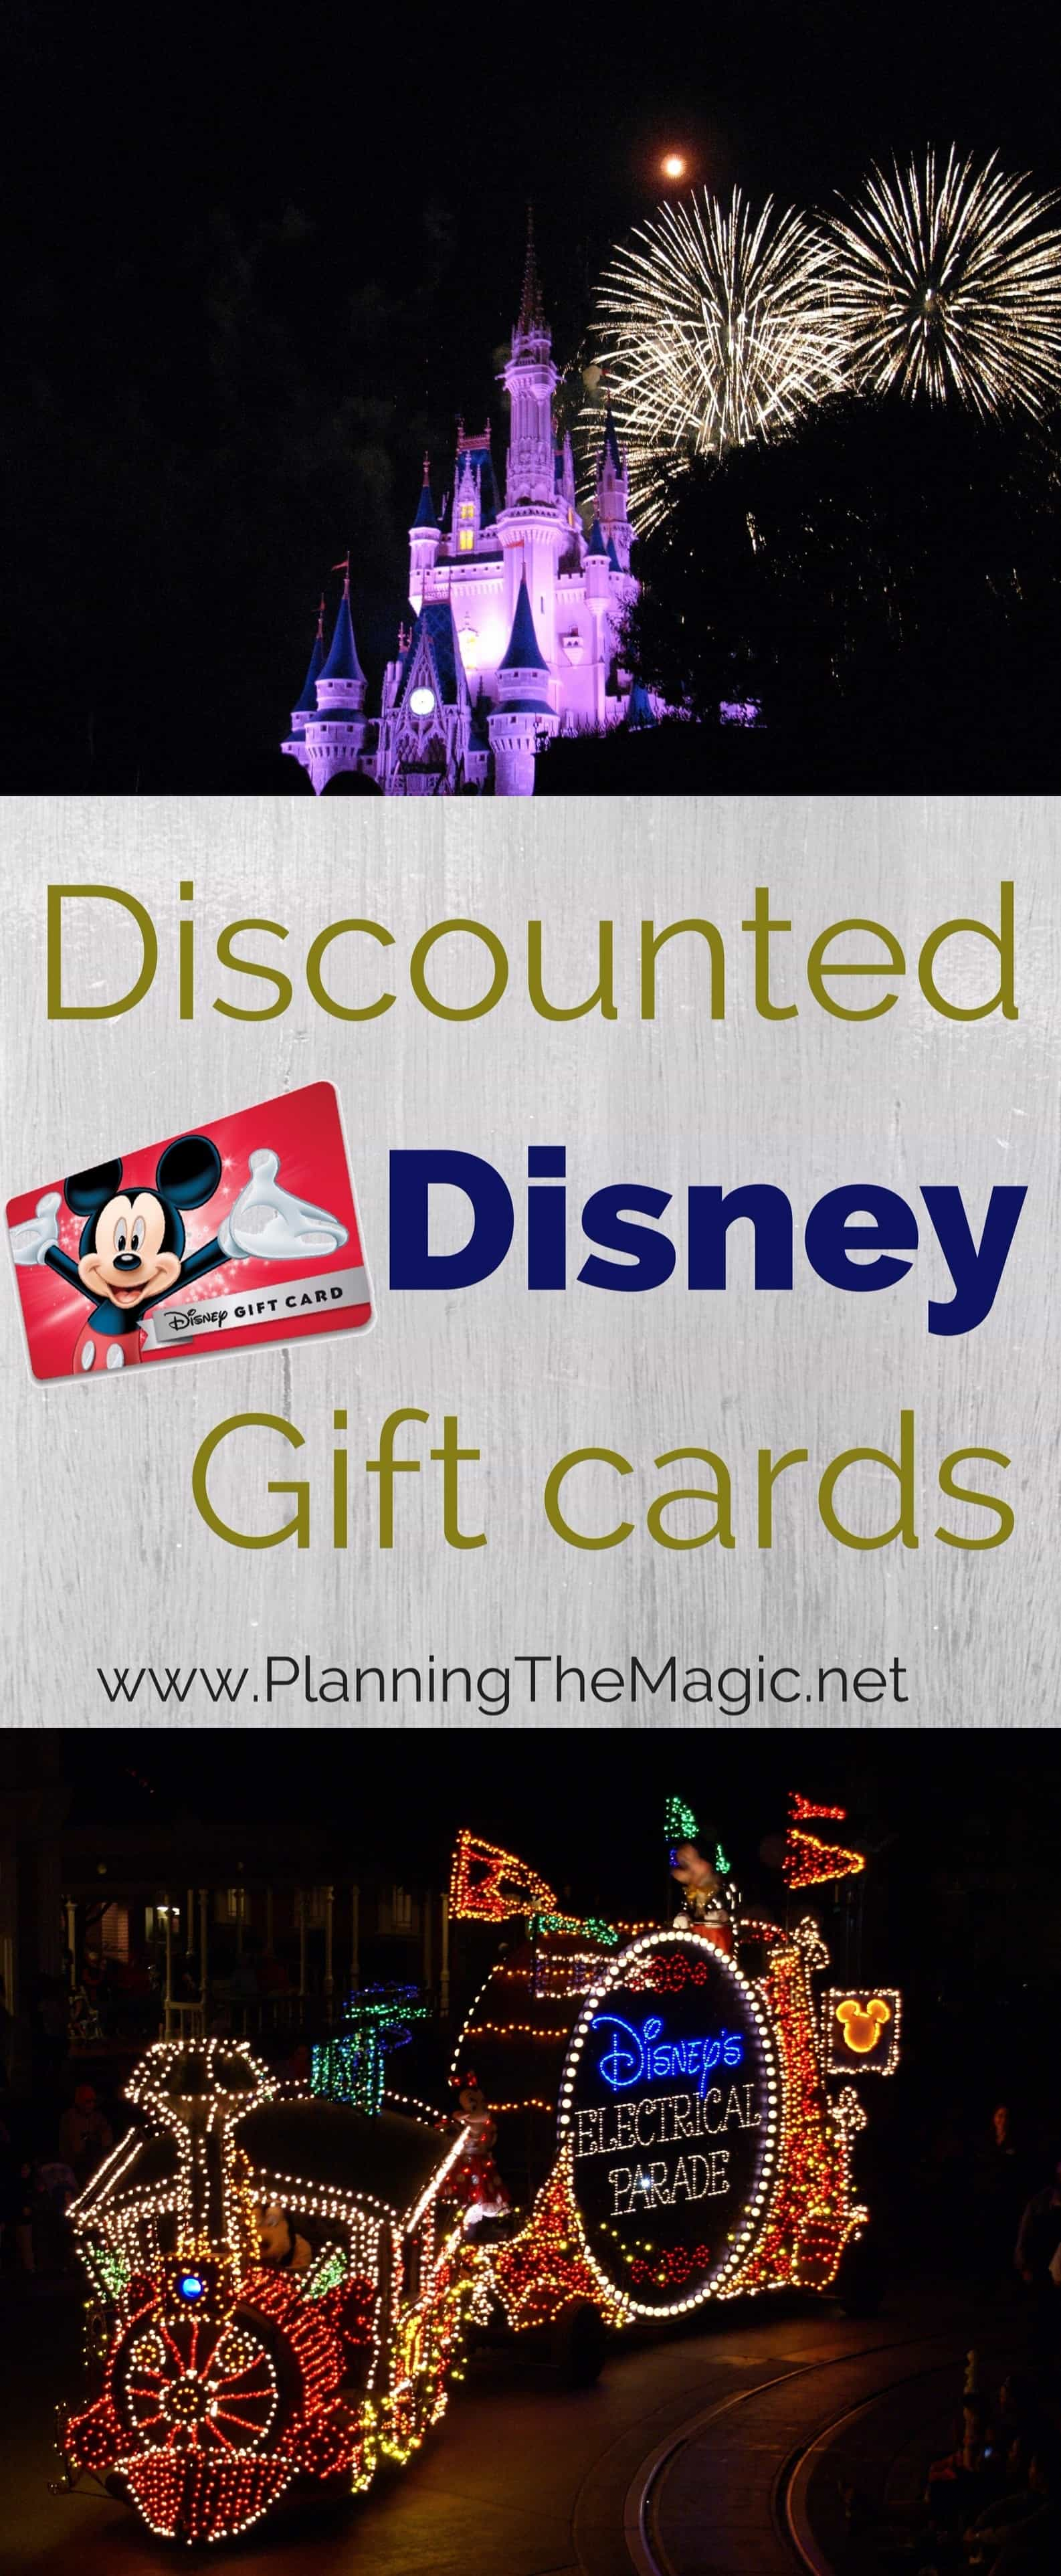 Discounted Disney Gift Cards 2018 - Tips You Need to Know ...